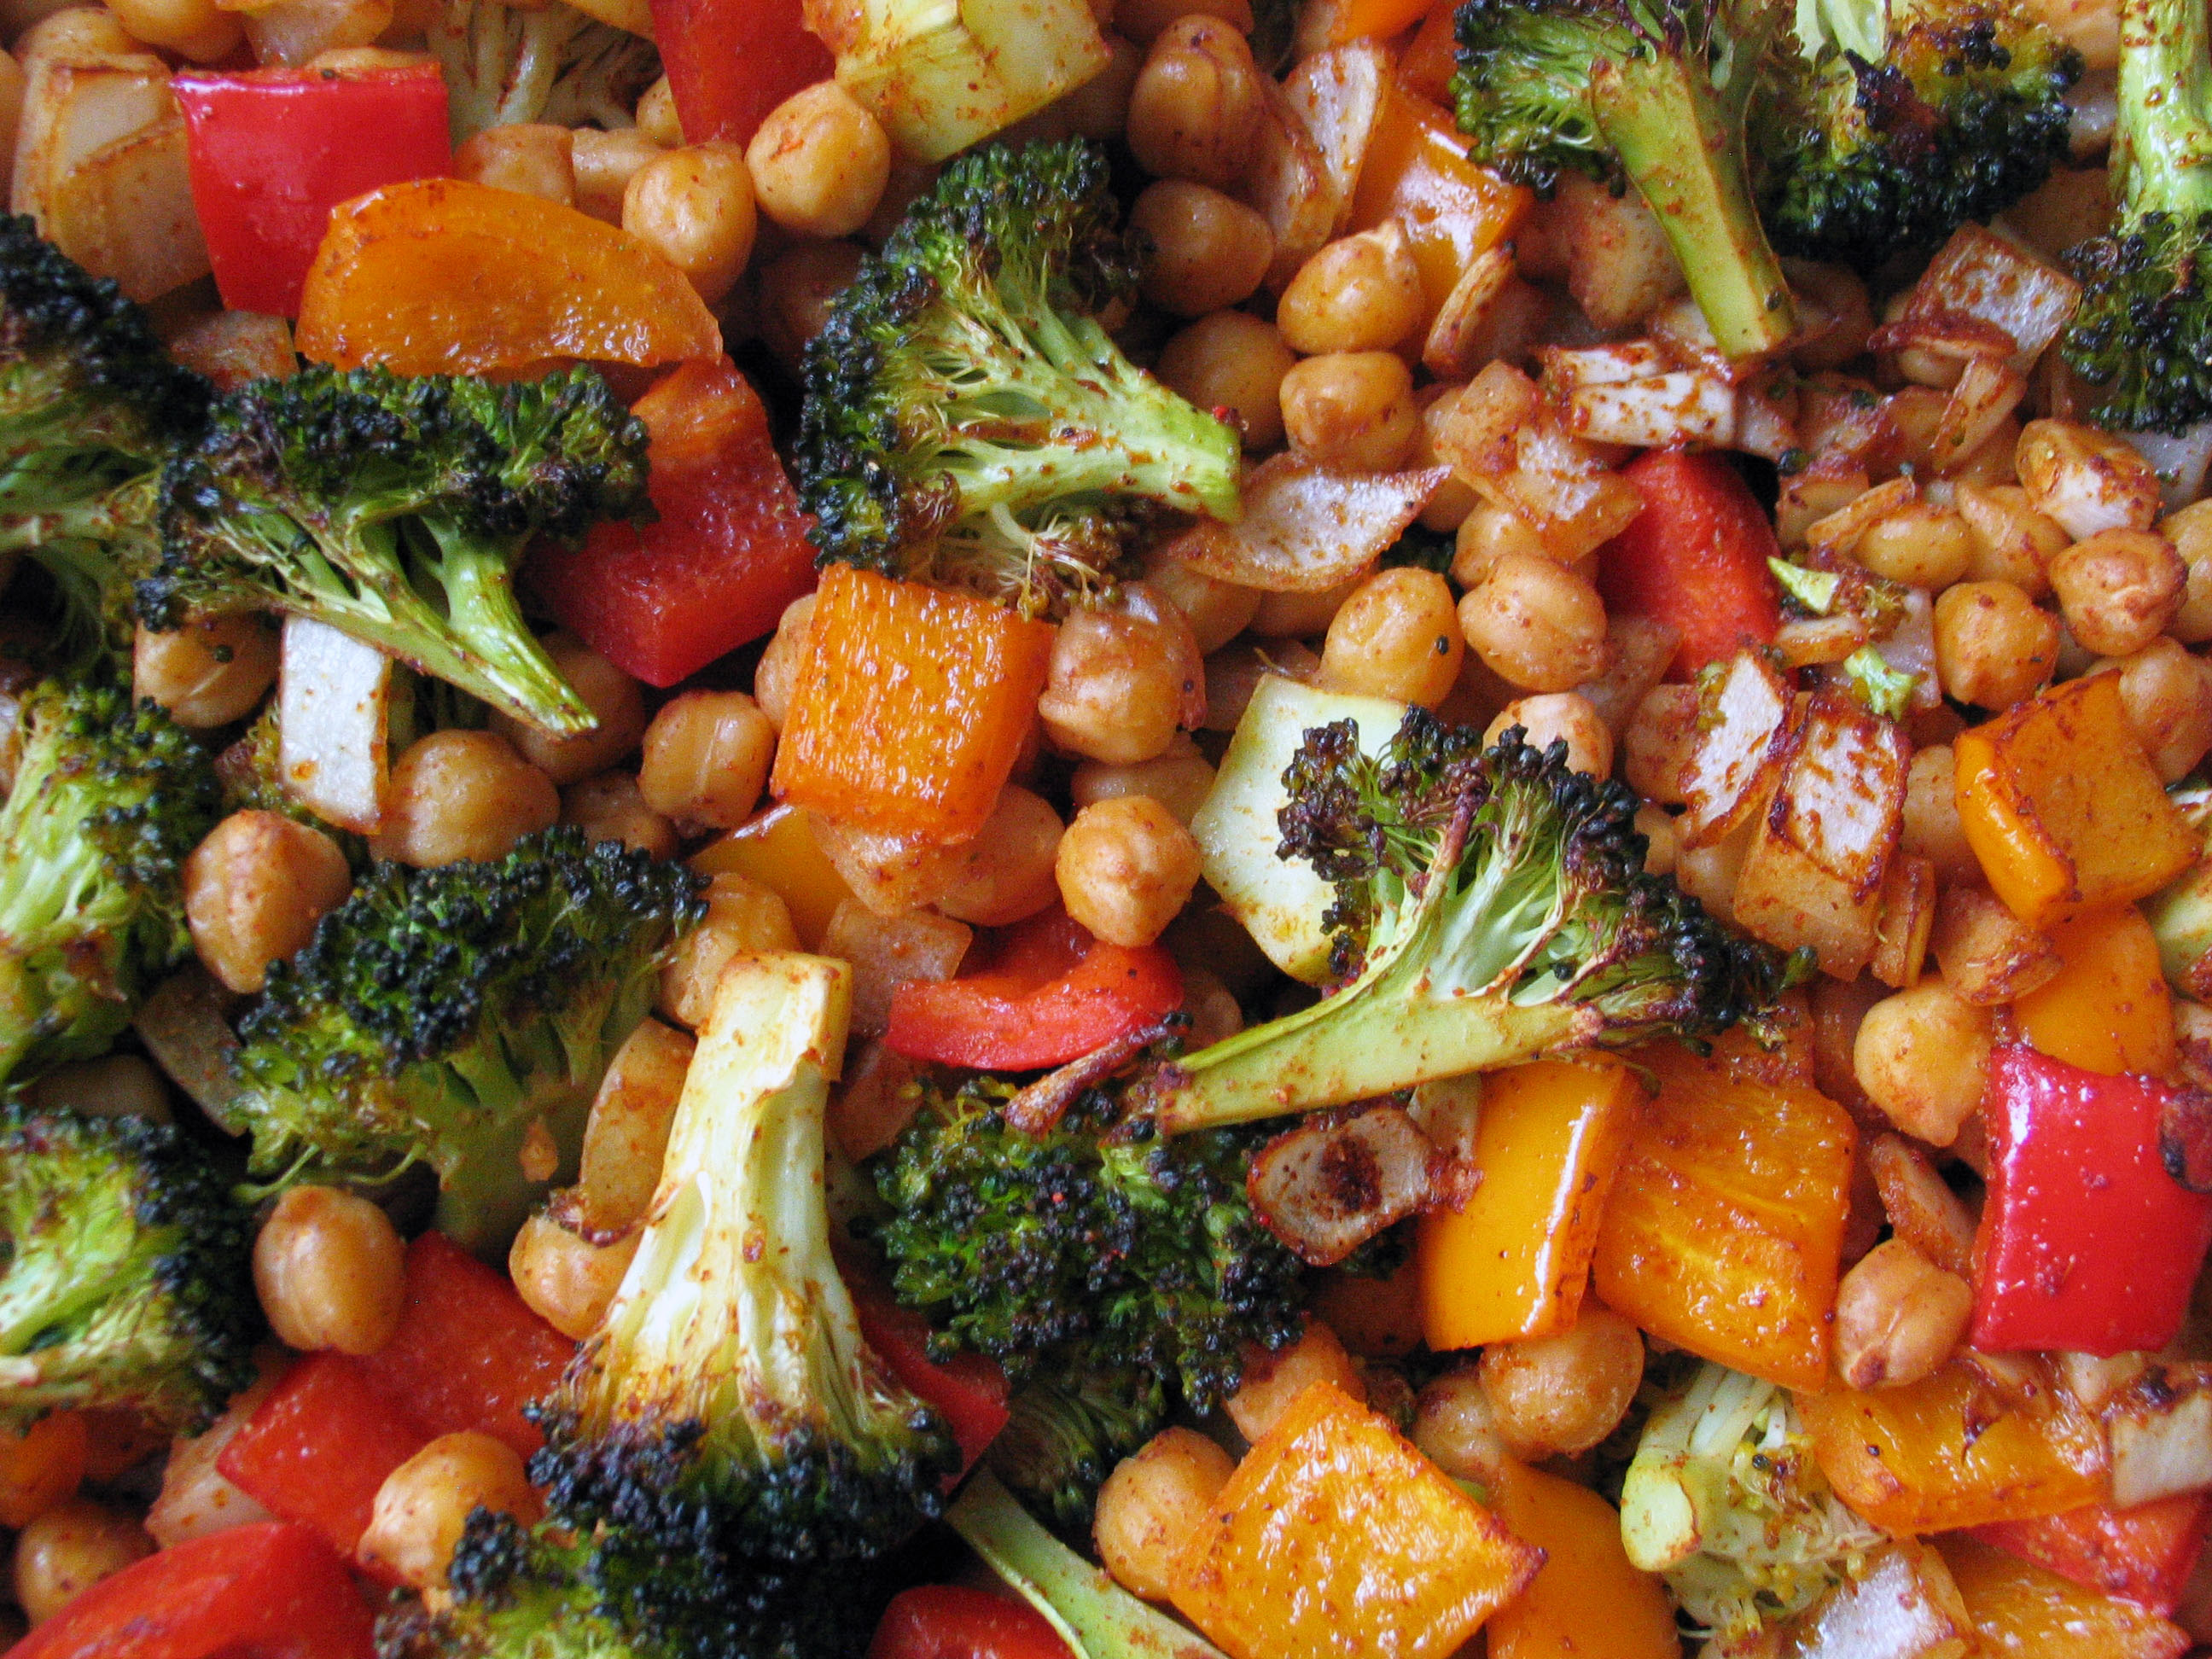 Roasted Broccoli and Chickpea Bowl (or Burrito)